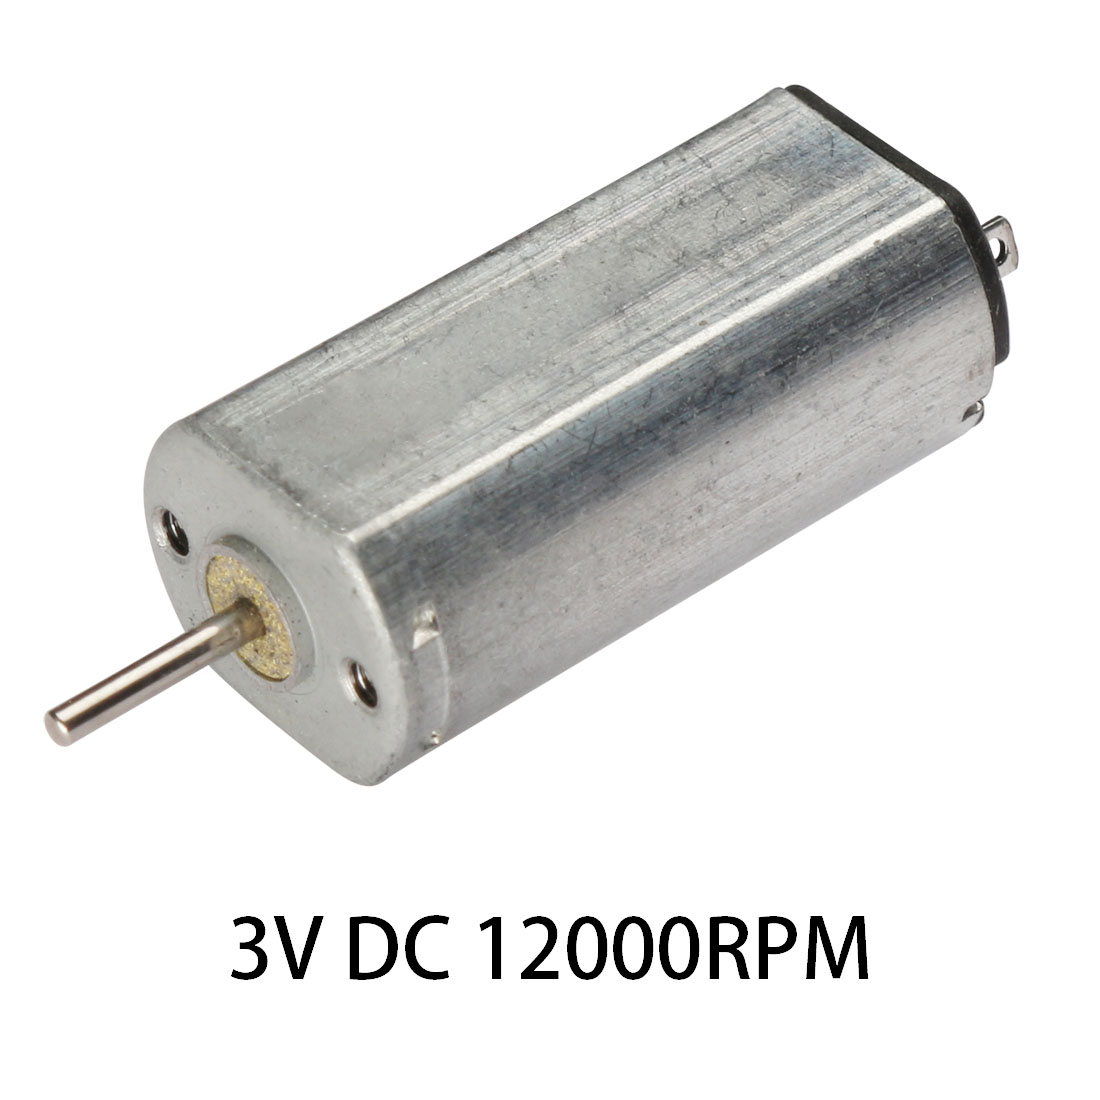 3V DC 12000RPM High-power Torque Magnetic Mini Electric Motor Electrical Tools